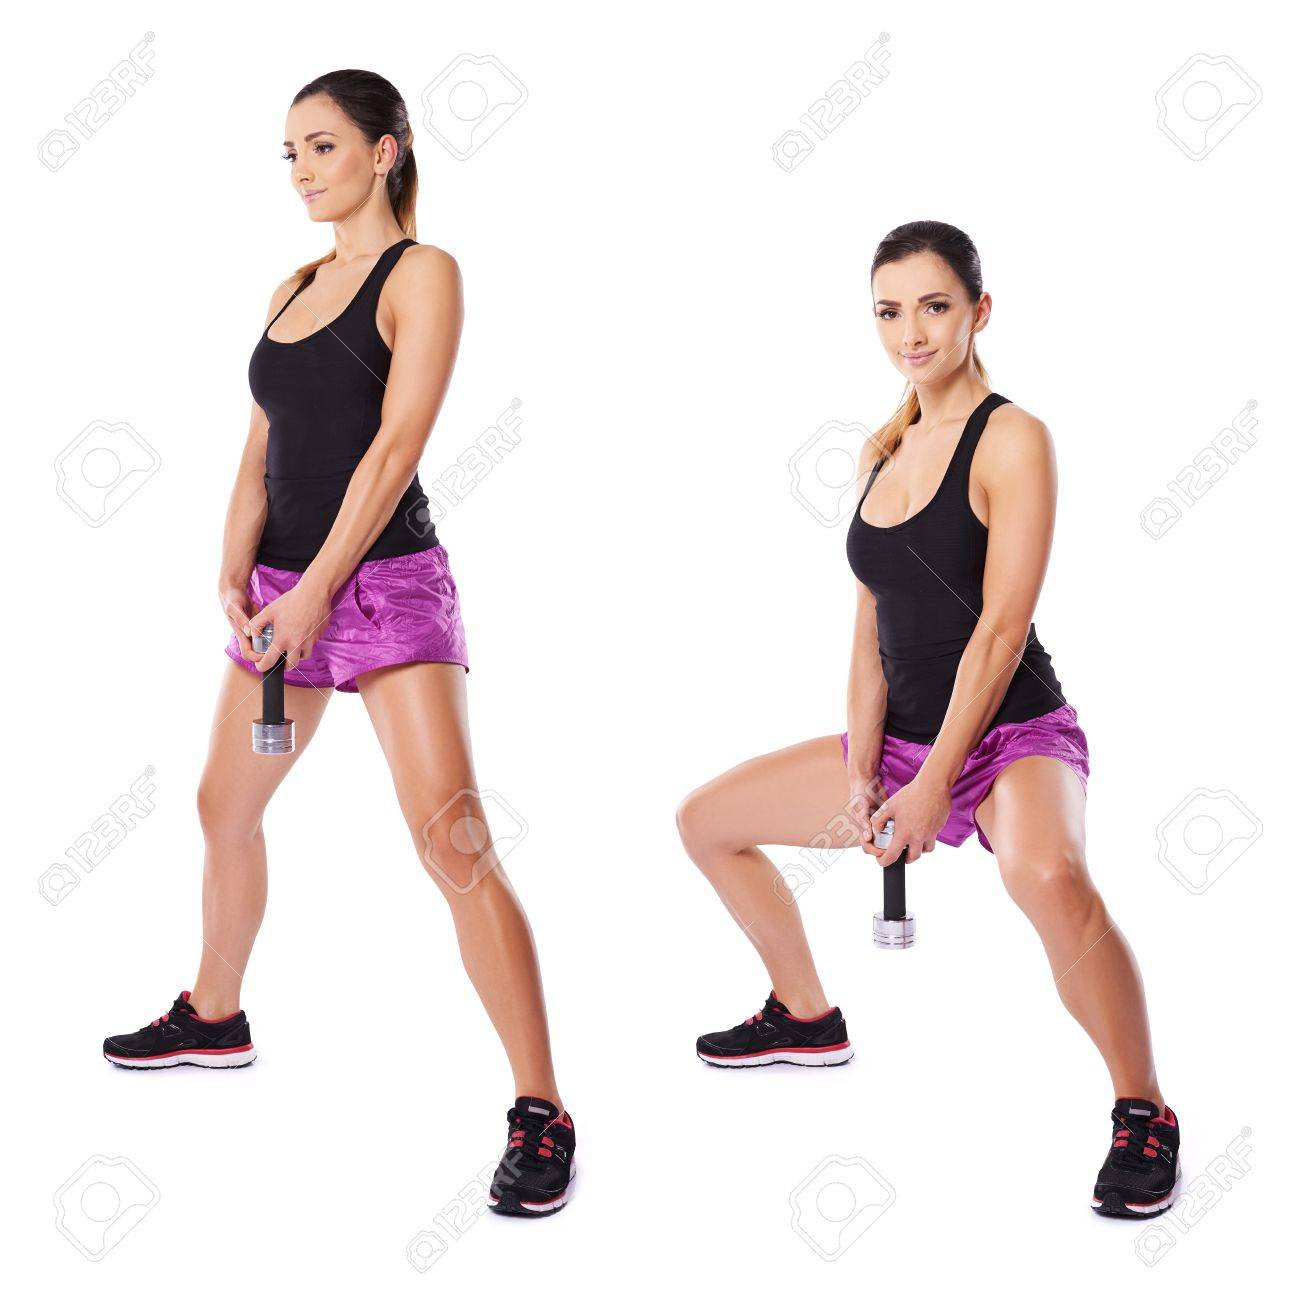 1300x1300 Athletic Young Woman Working Out With Dumbbells Shown In Two